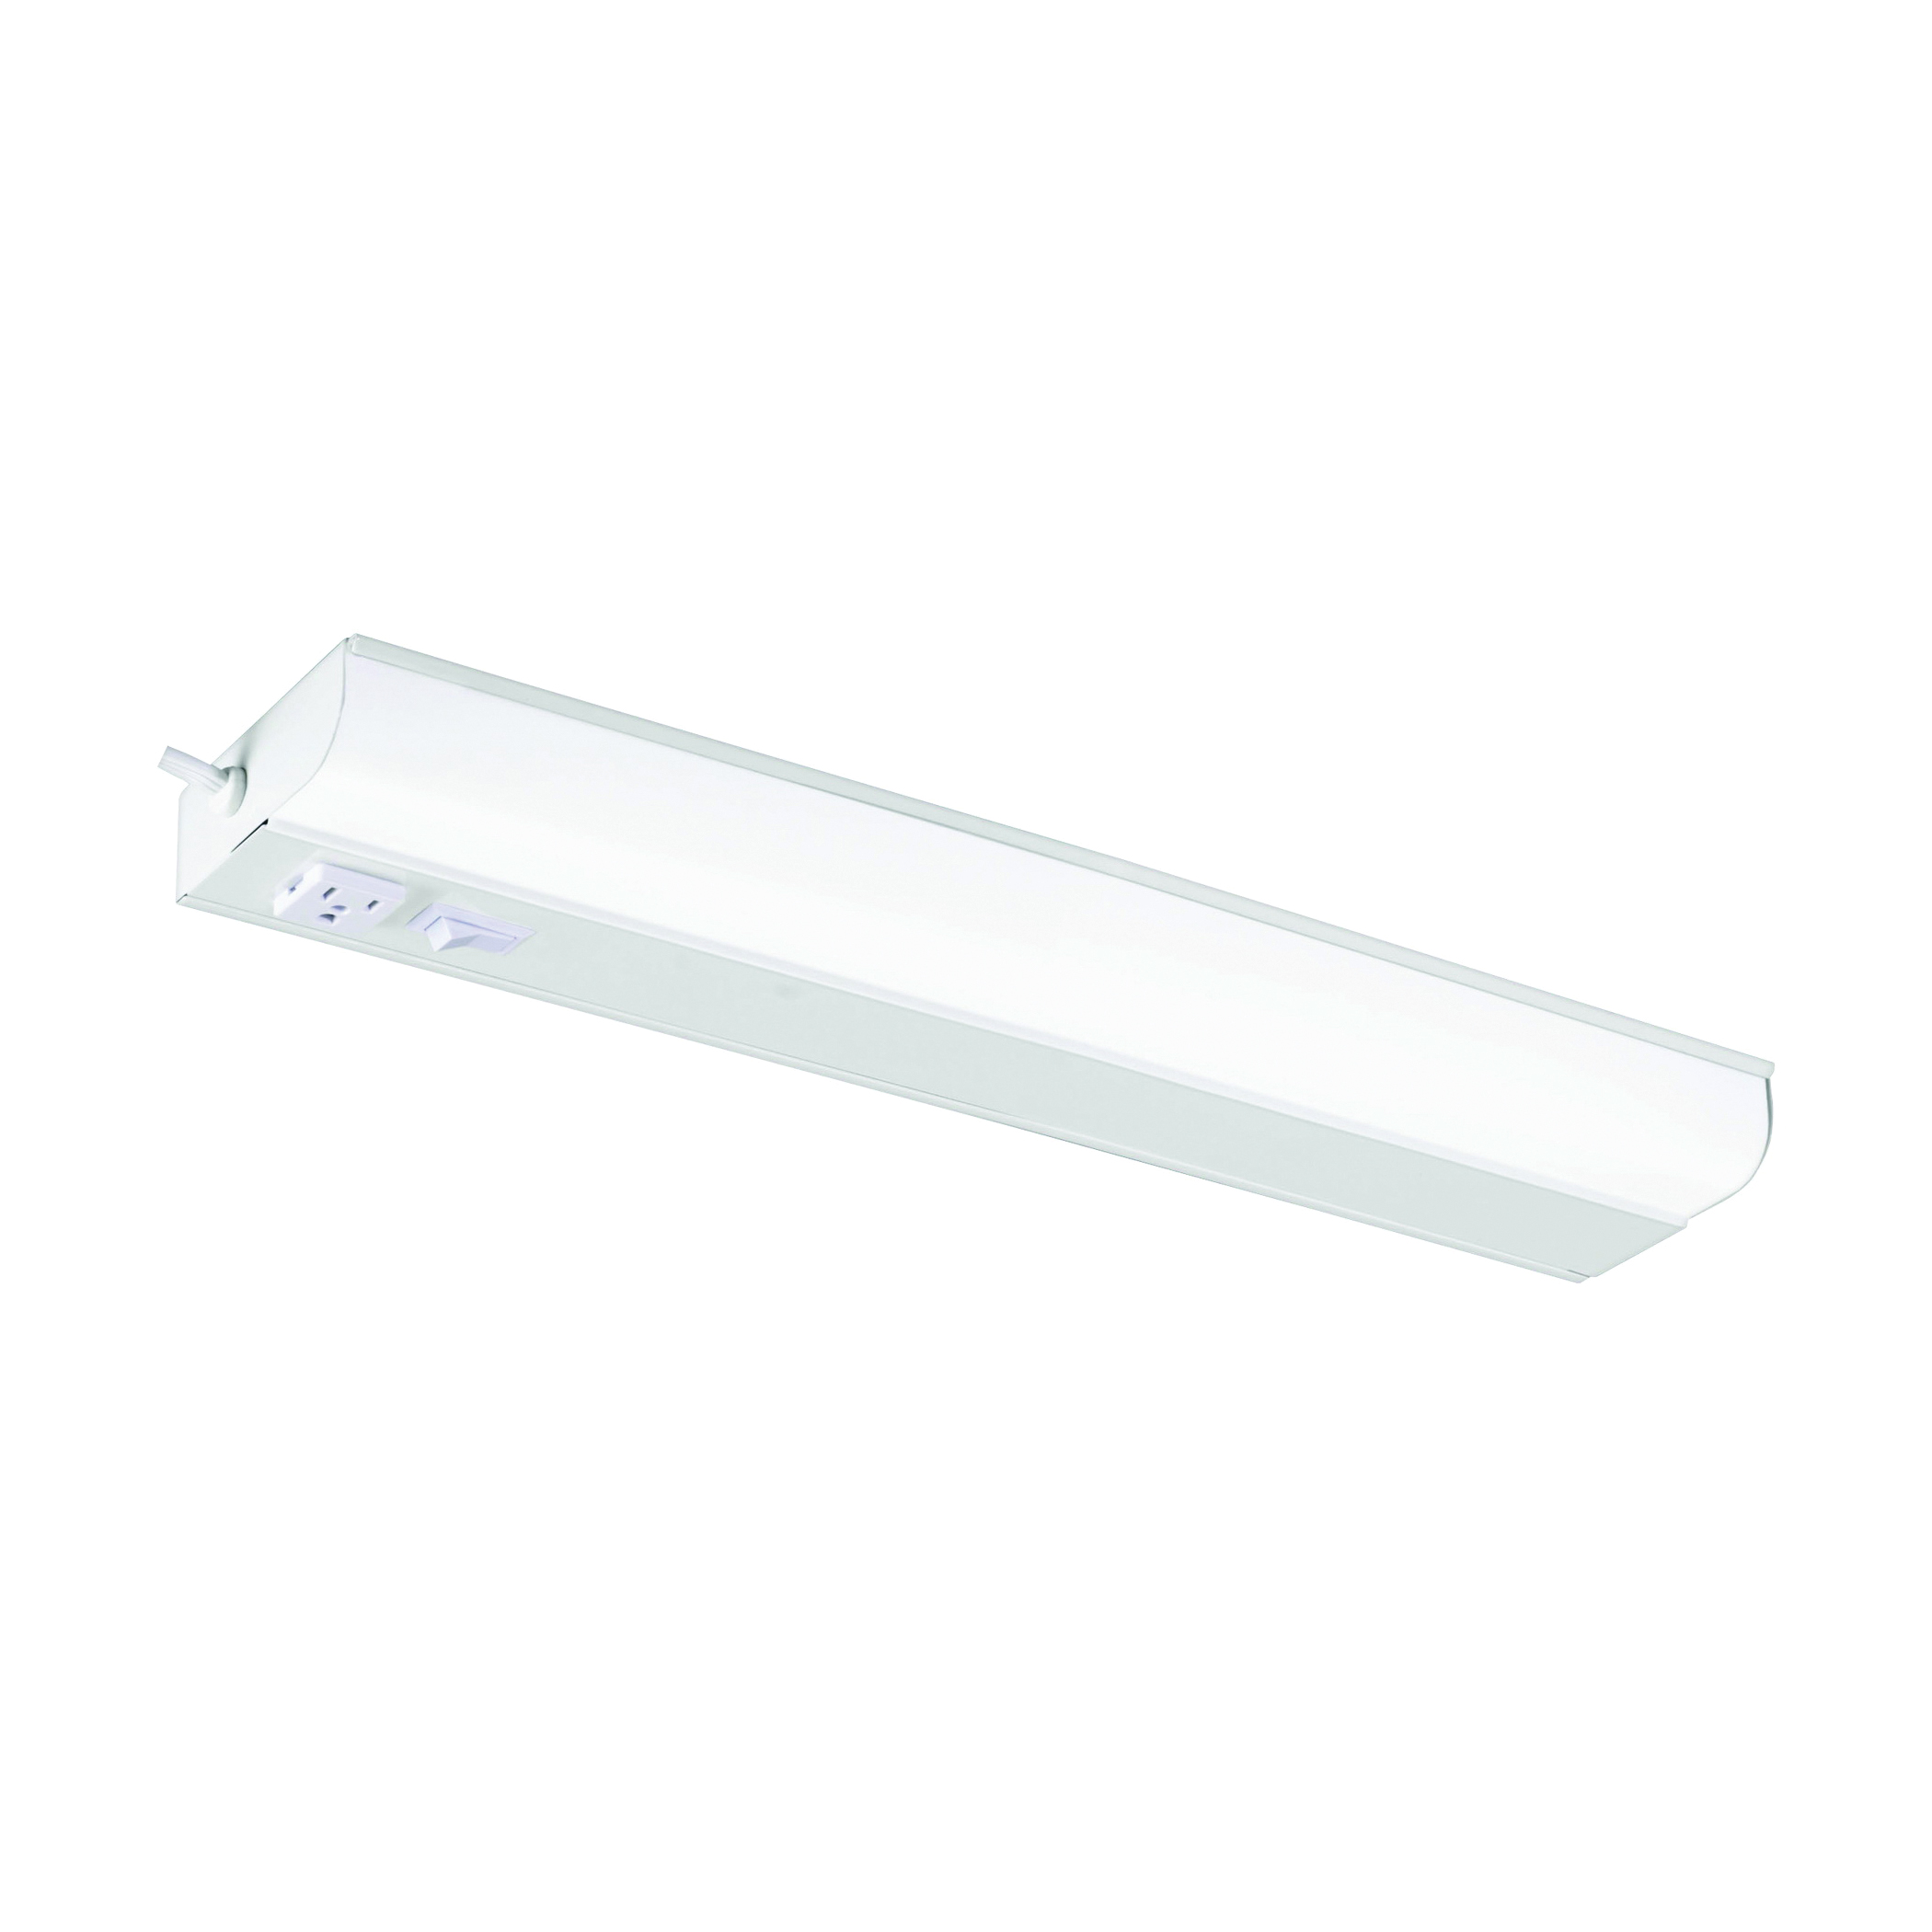 Picture of GOOD EARTH LIGHTING G9318P-T8-WH-I Fluorescent Light, 120 V, 1-Lamp, 3500 K Color Temp, Metal Fixture